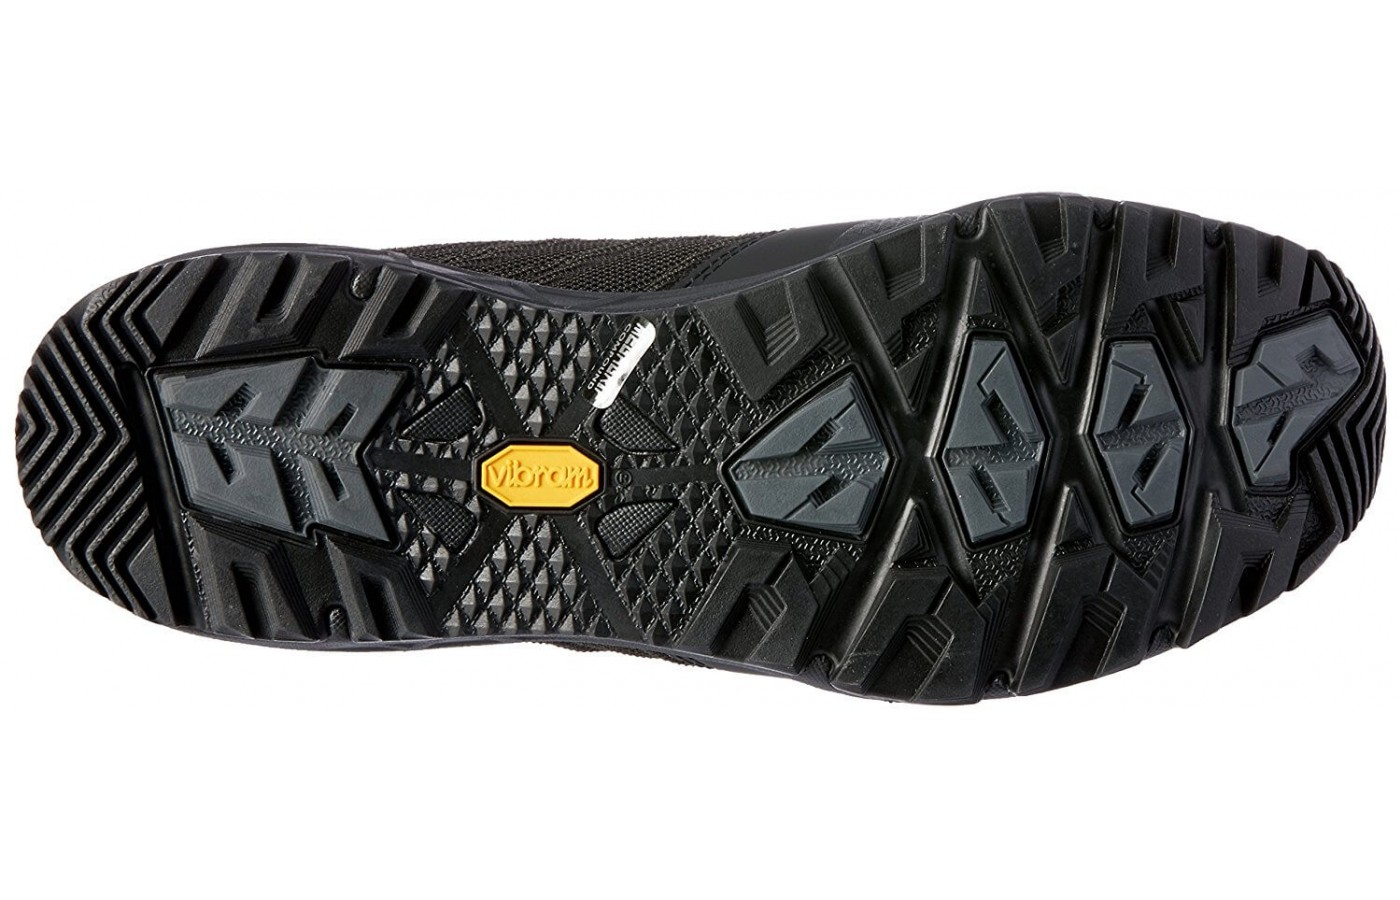 The The North Face Ultra Fastpack II GTX features a Vibram MegaGrip outsole